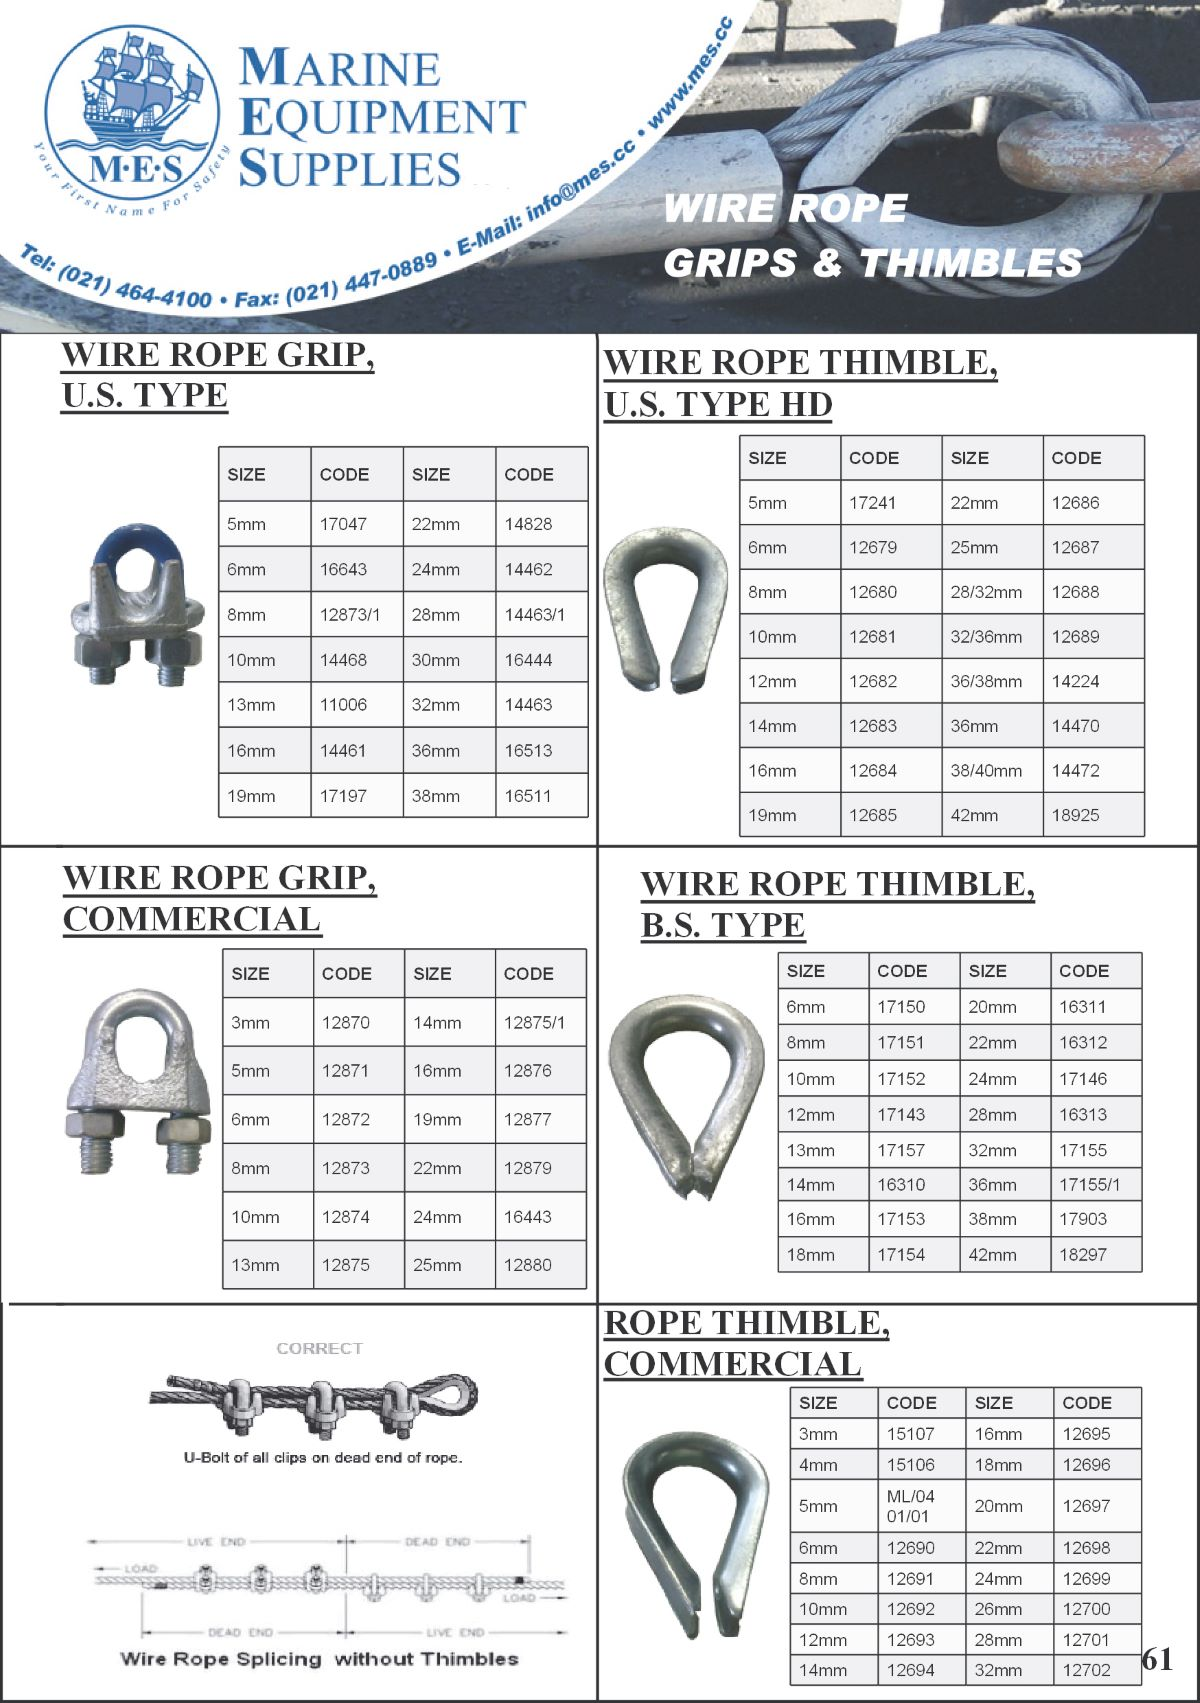 Marine Wire Rope Grips & Thimbles